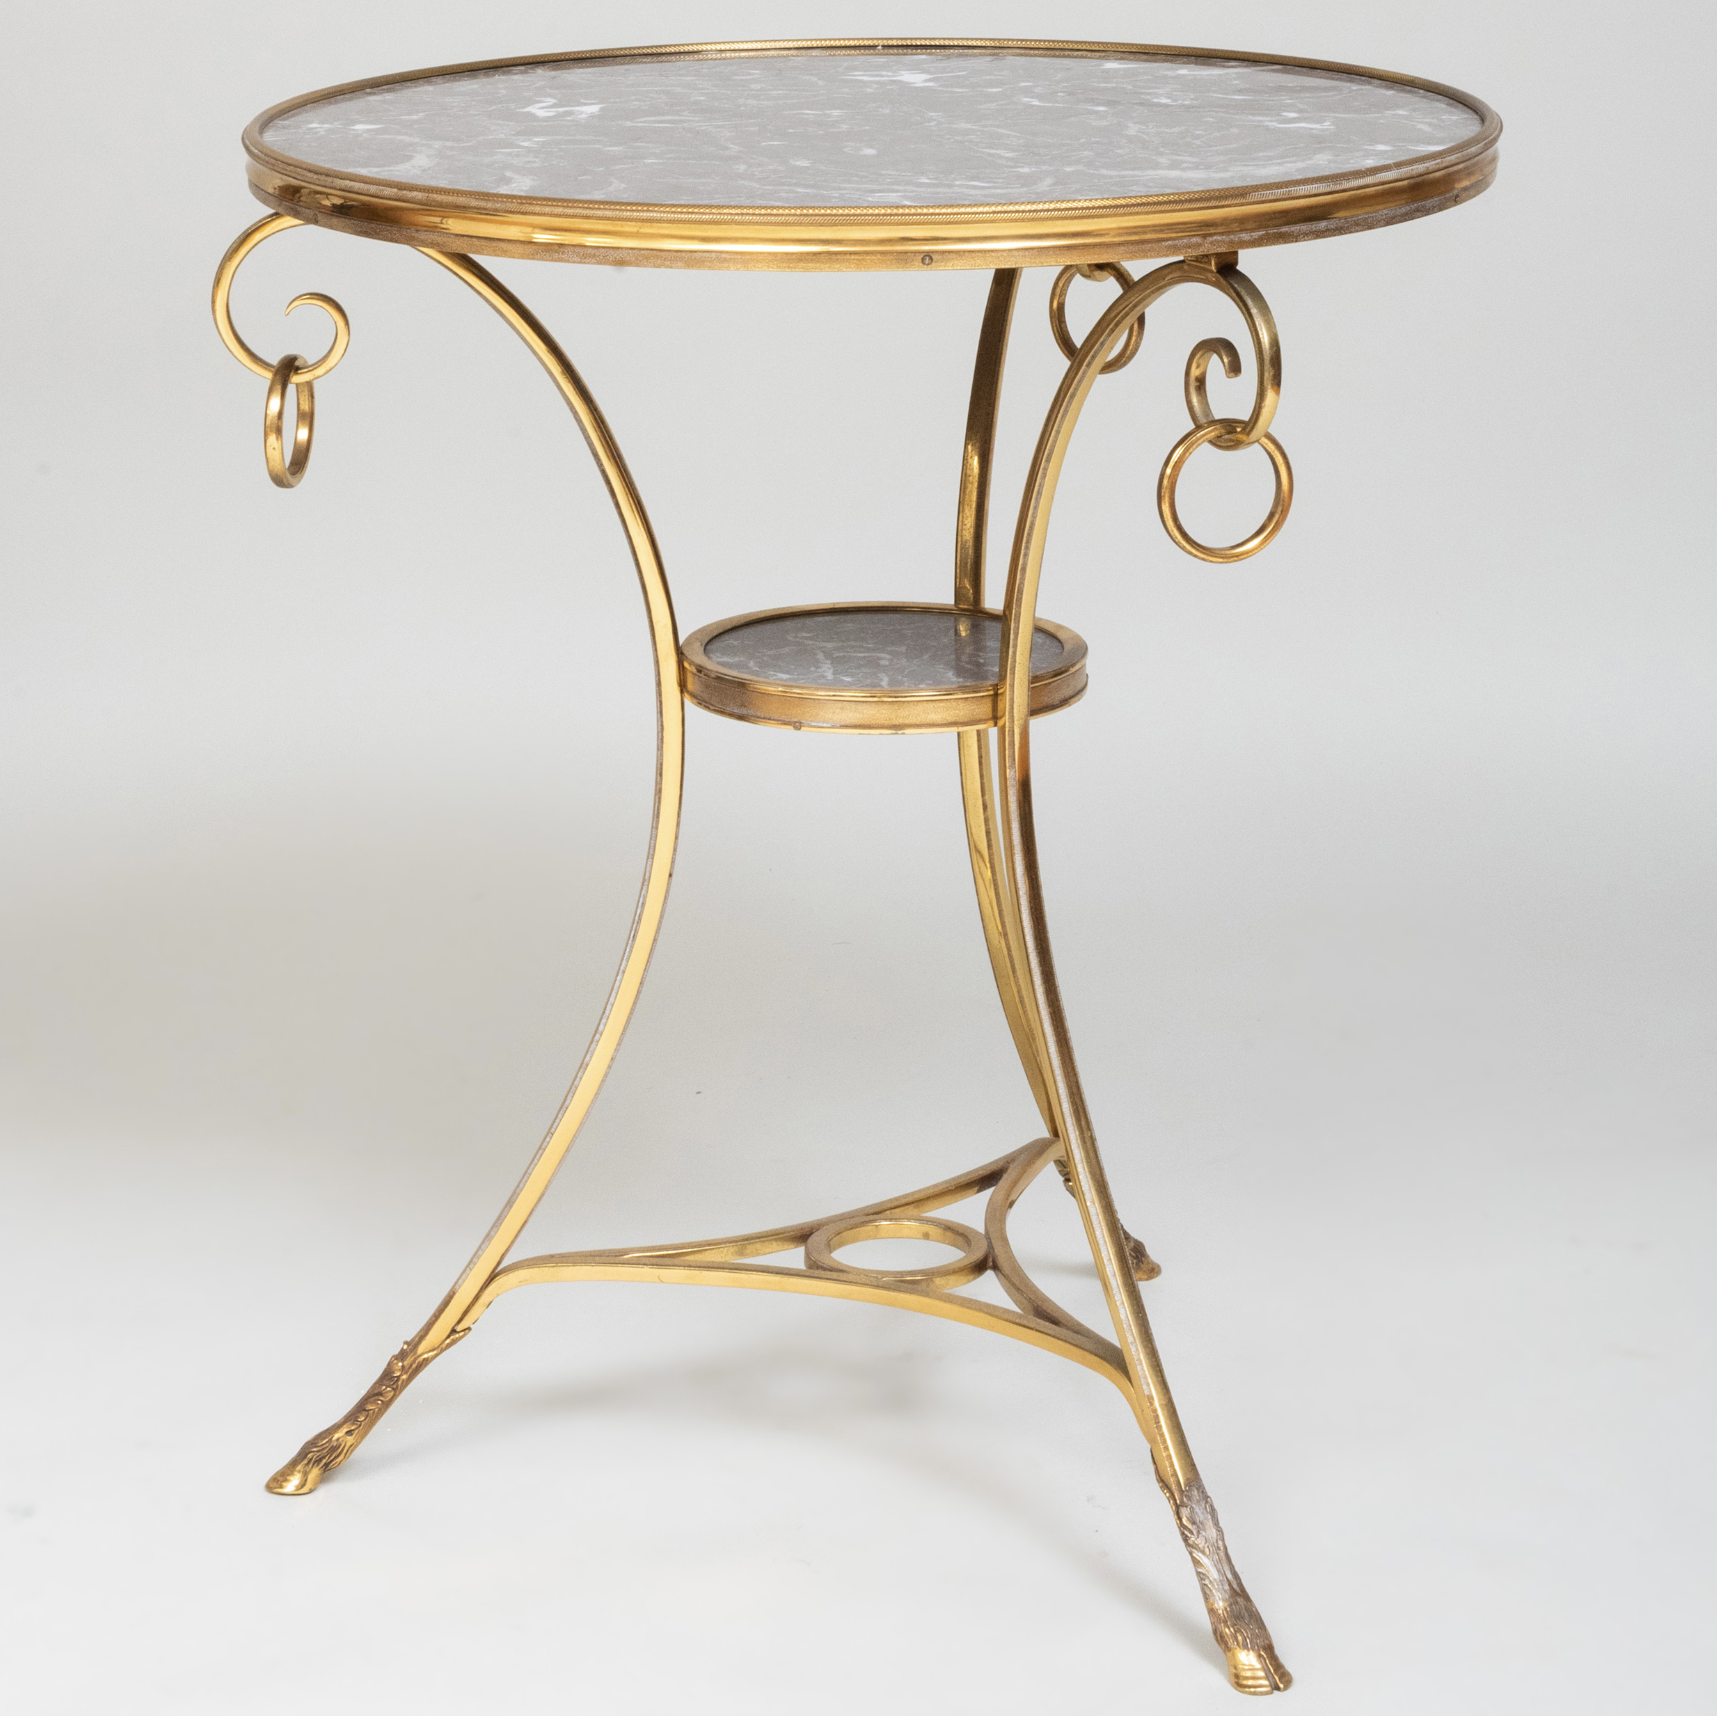 French furniture, french antique, french table, marble table, side table